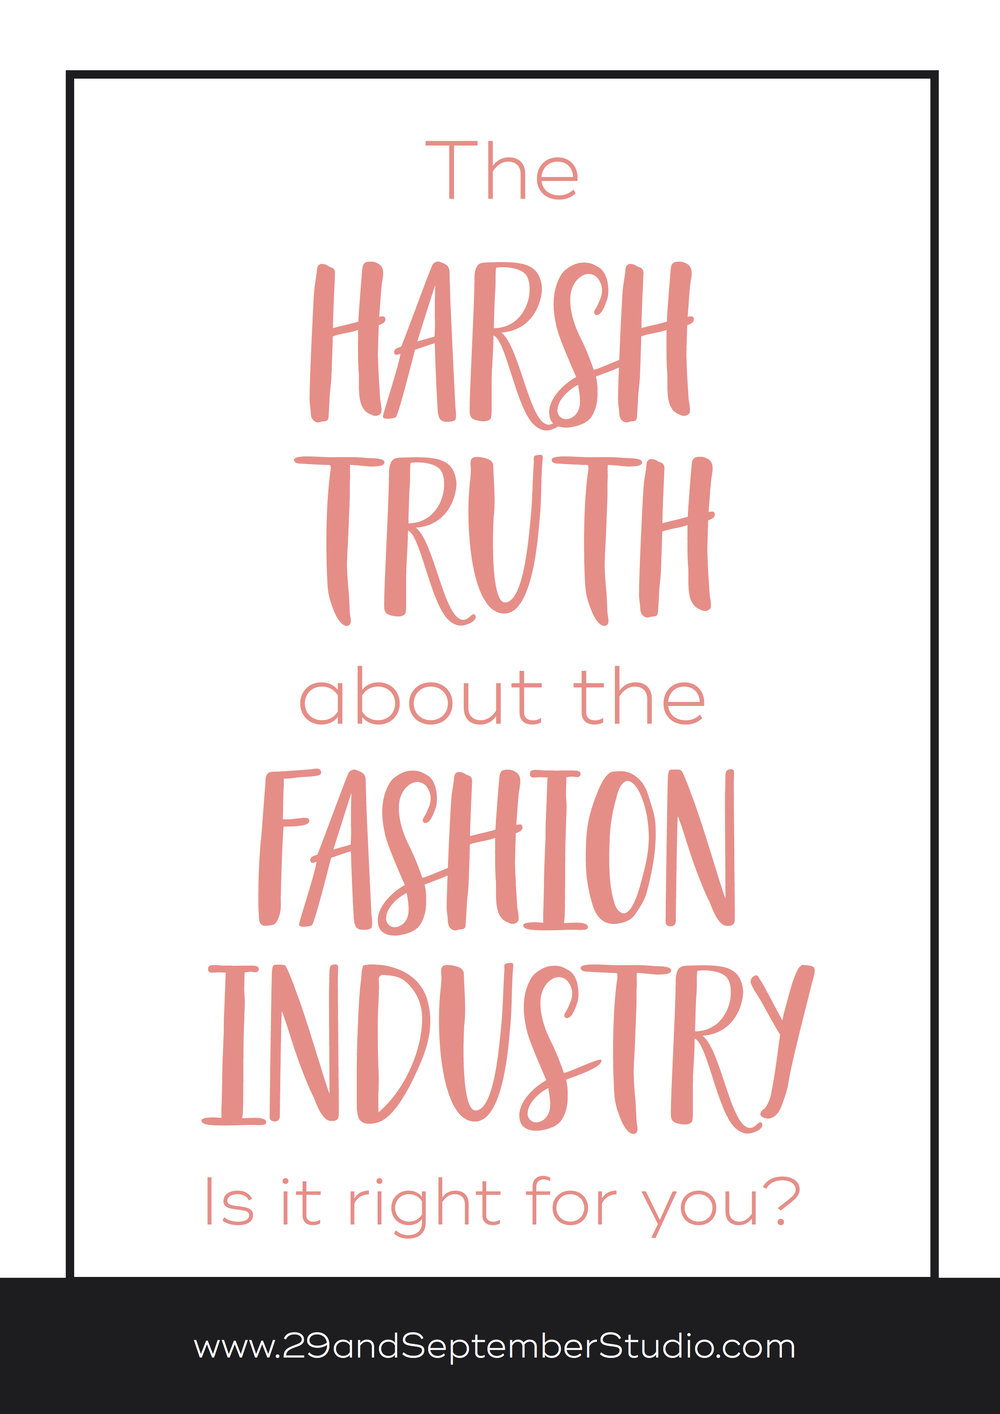 The truth about the fashion industry, is it right for you? 29andSeptember Studio